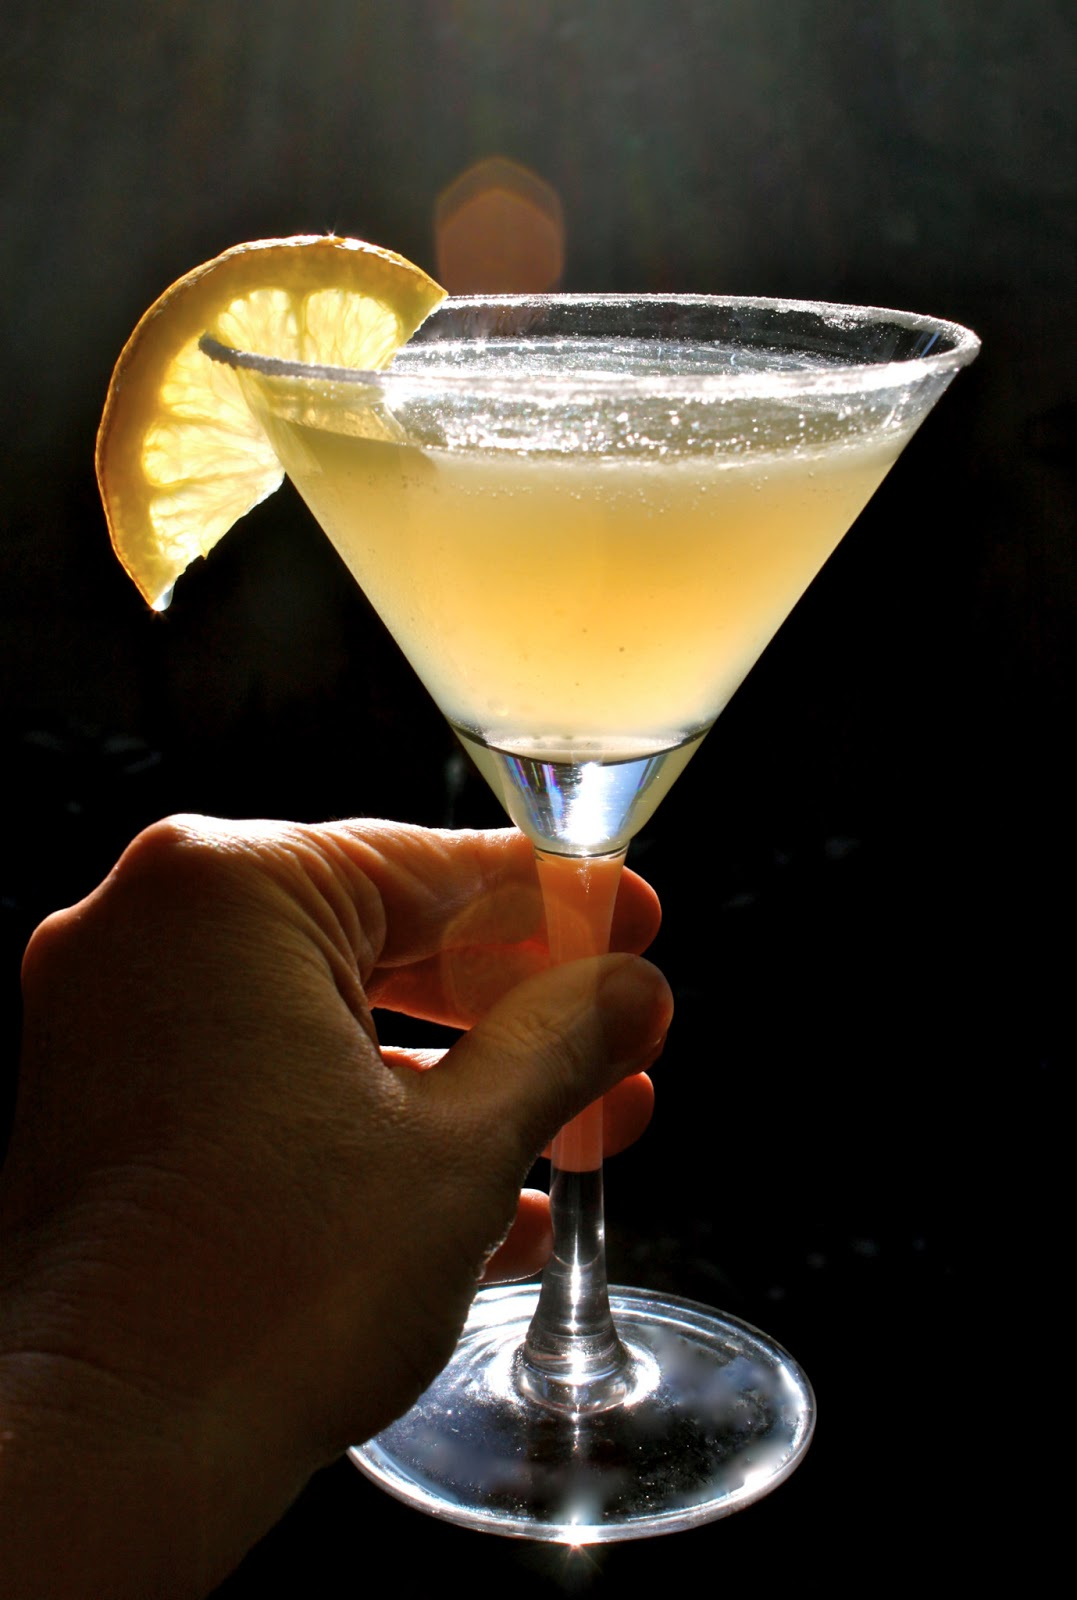 The Lemon Drop Martini is a type of cocktail that adds flavor to the classic Vodka Martini. Infusing crisp lemon flavors with sweet and fine sugar, it is no wonder that the Lemon Drop Martini is one of the more popular martini drinks ordered.